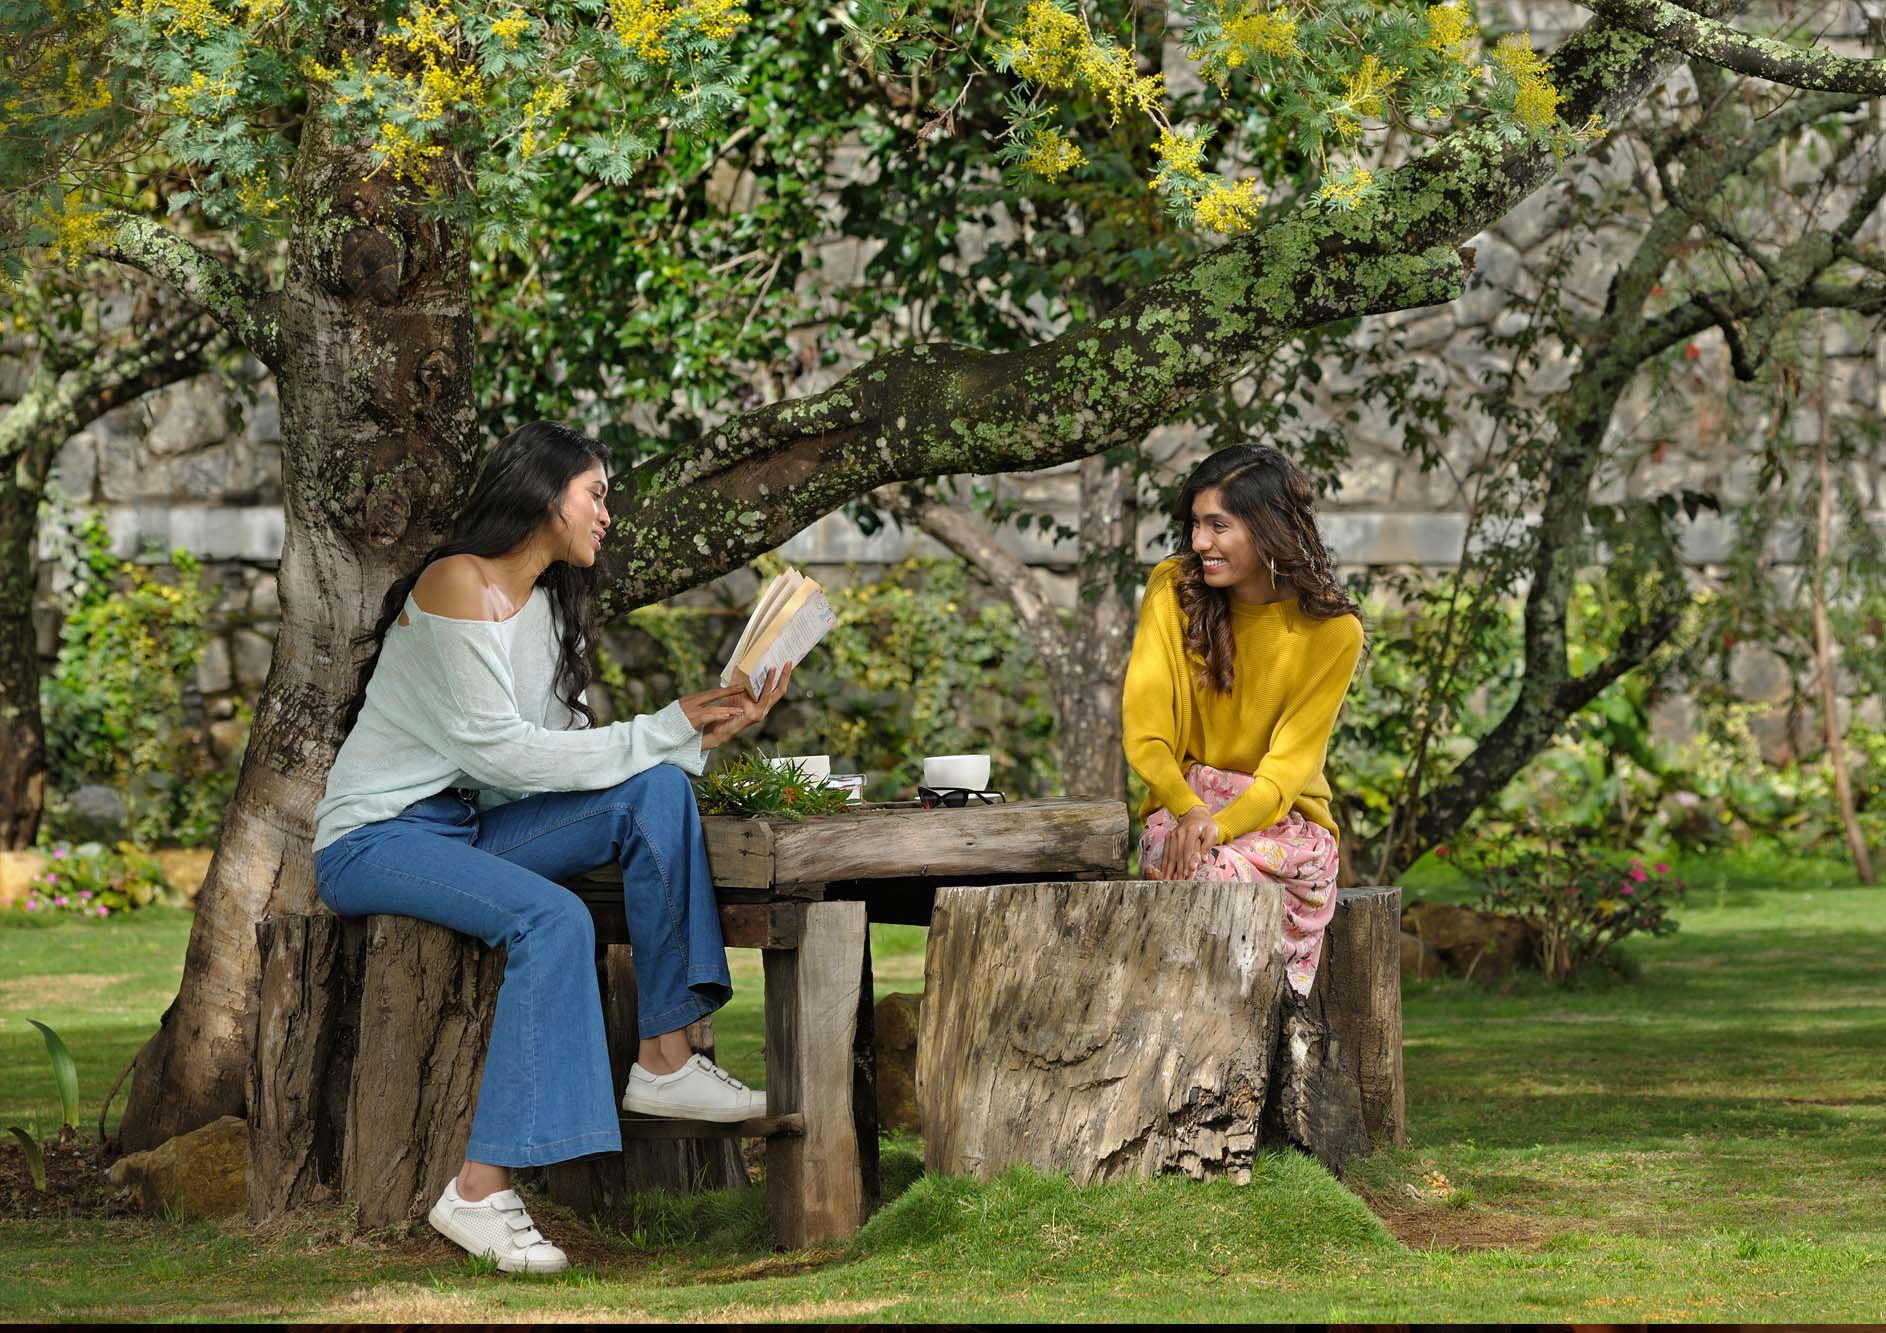 Young-woman-enjoying-nature-with-book-and-coffee